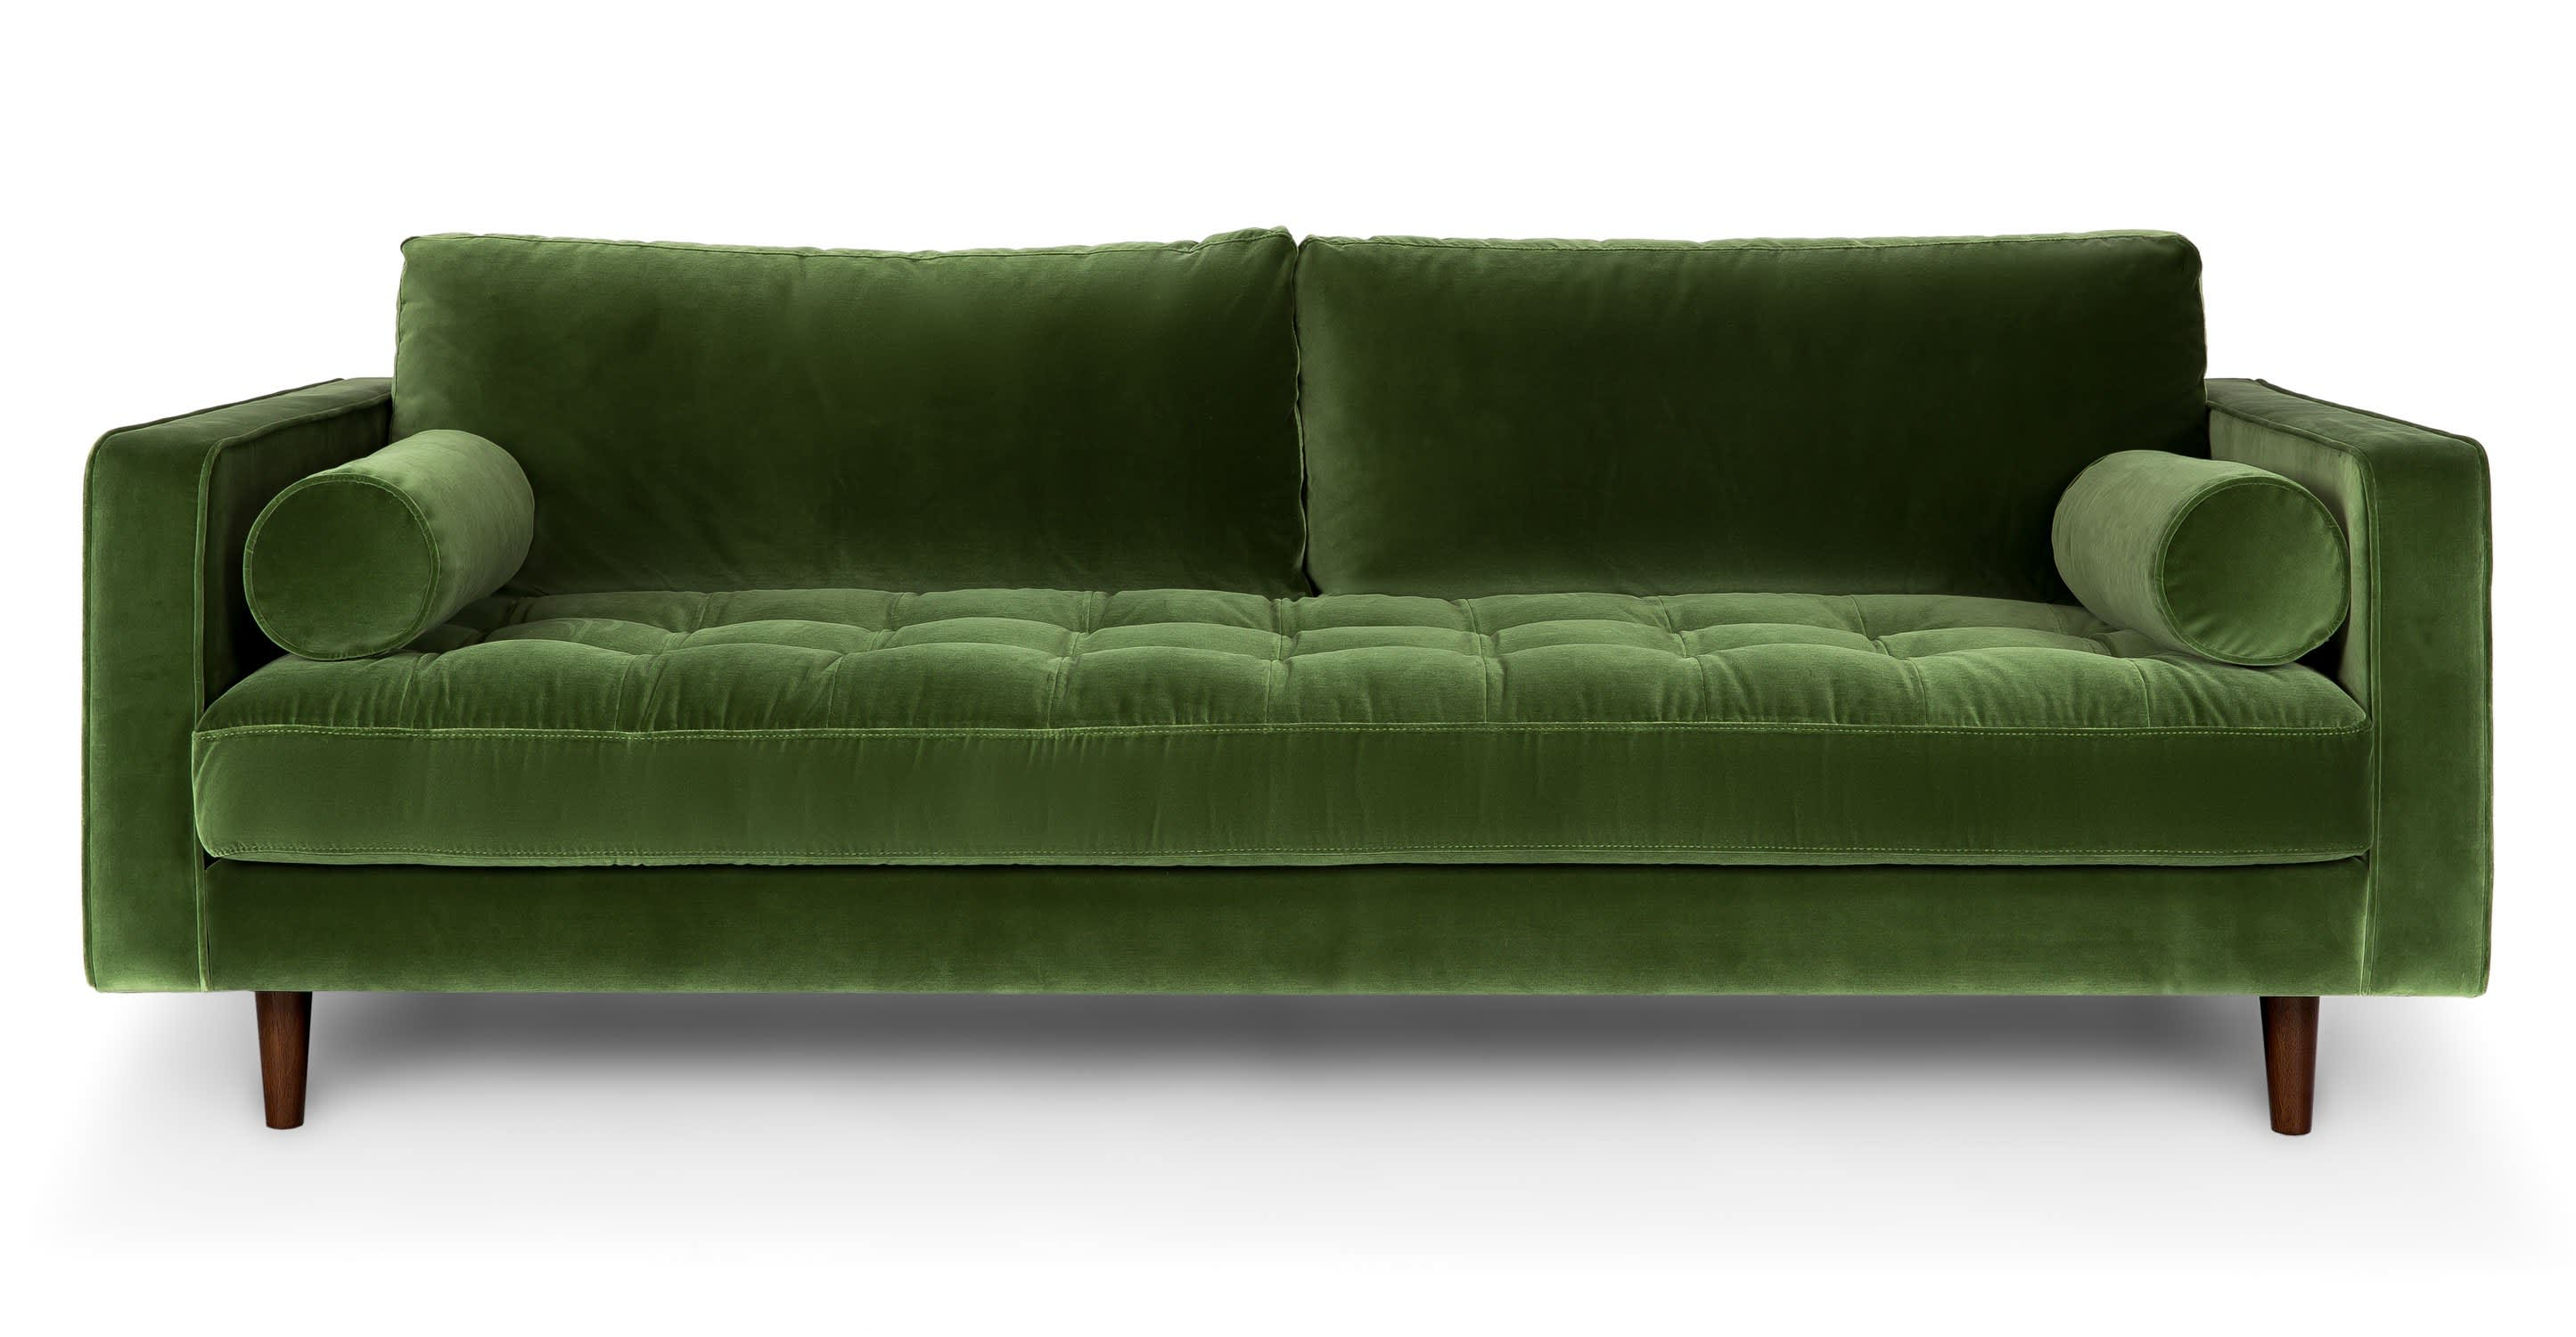 A Guide To Green Sofas 20 Stylish Options Apartment Therapy